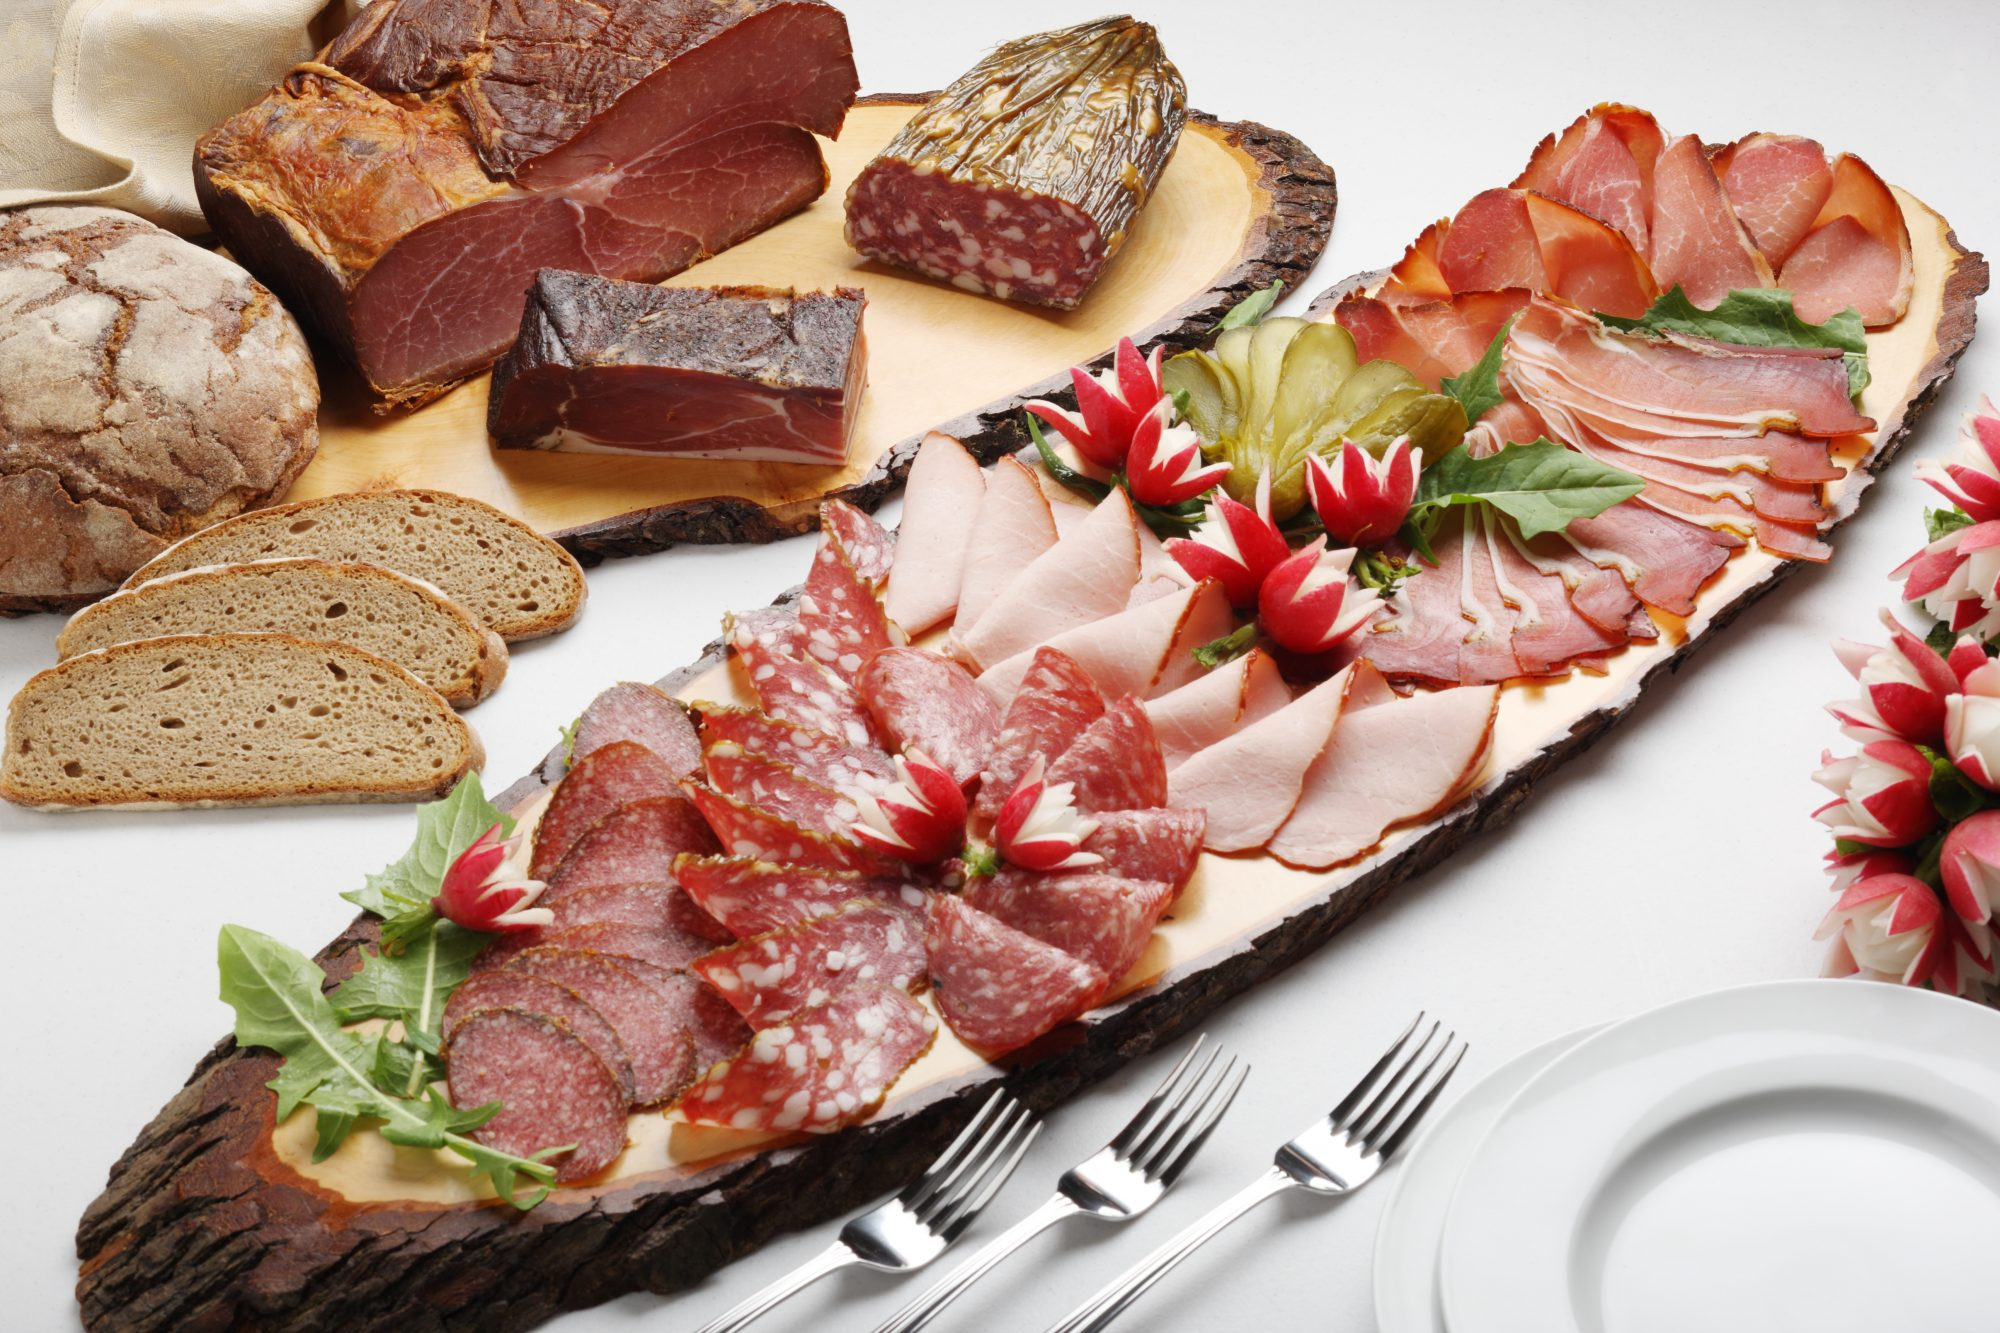 Charcuterie Getty 7/8/20